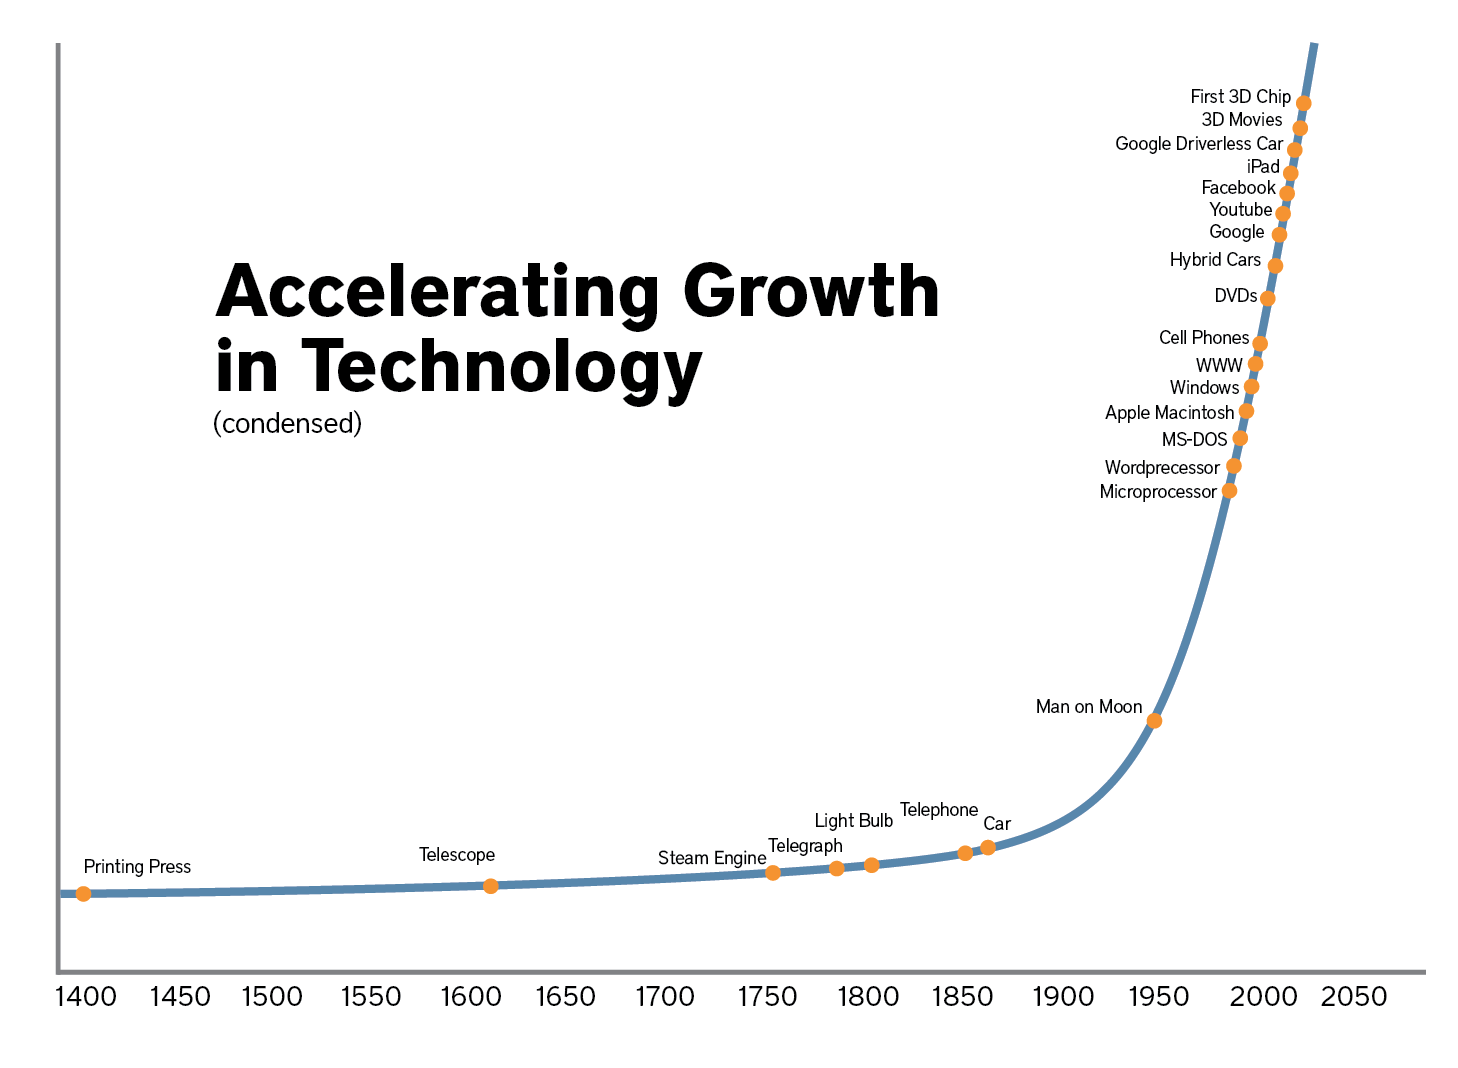 the growth of technology over the years